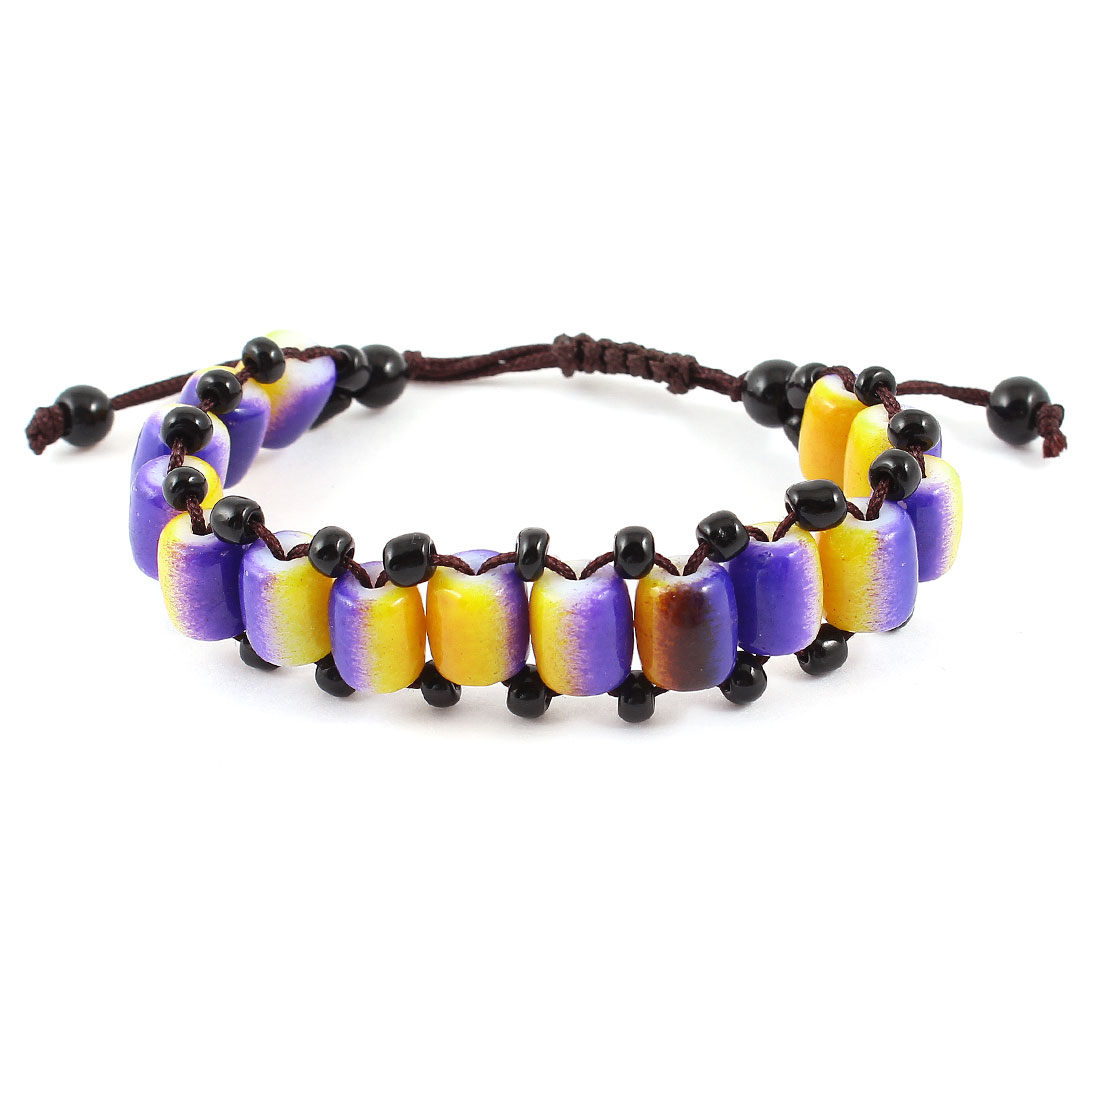 Lady Handmade Nylon Rope Purple Yellow Plastic Beads Decor Pull String Wrist Bracelet